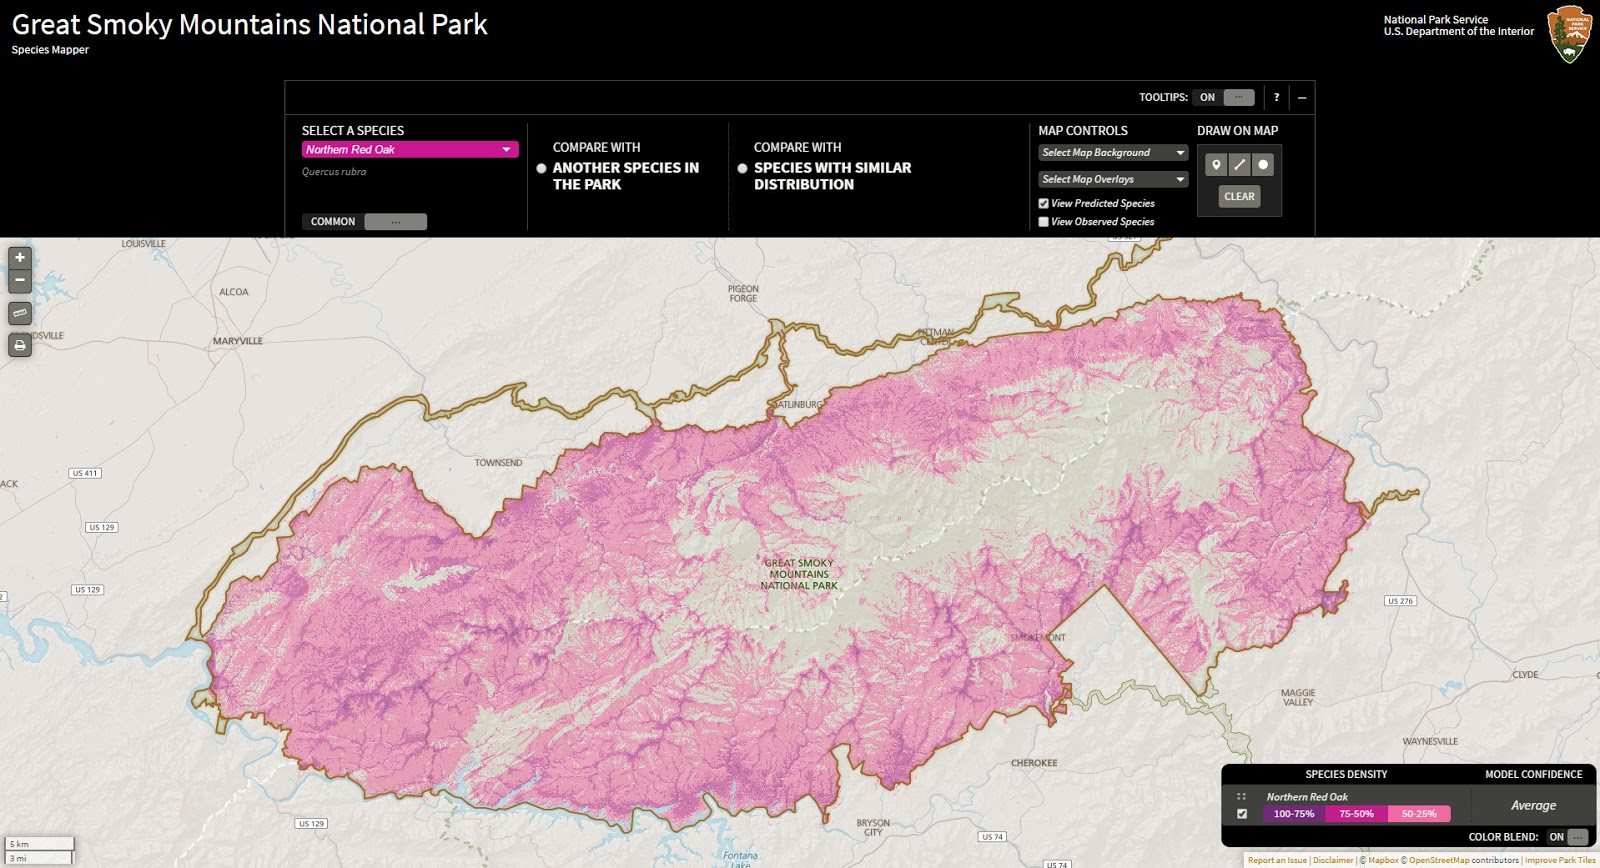 The Great Smoky Mountains National Park Species Map